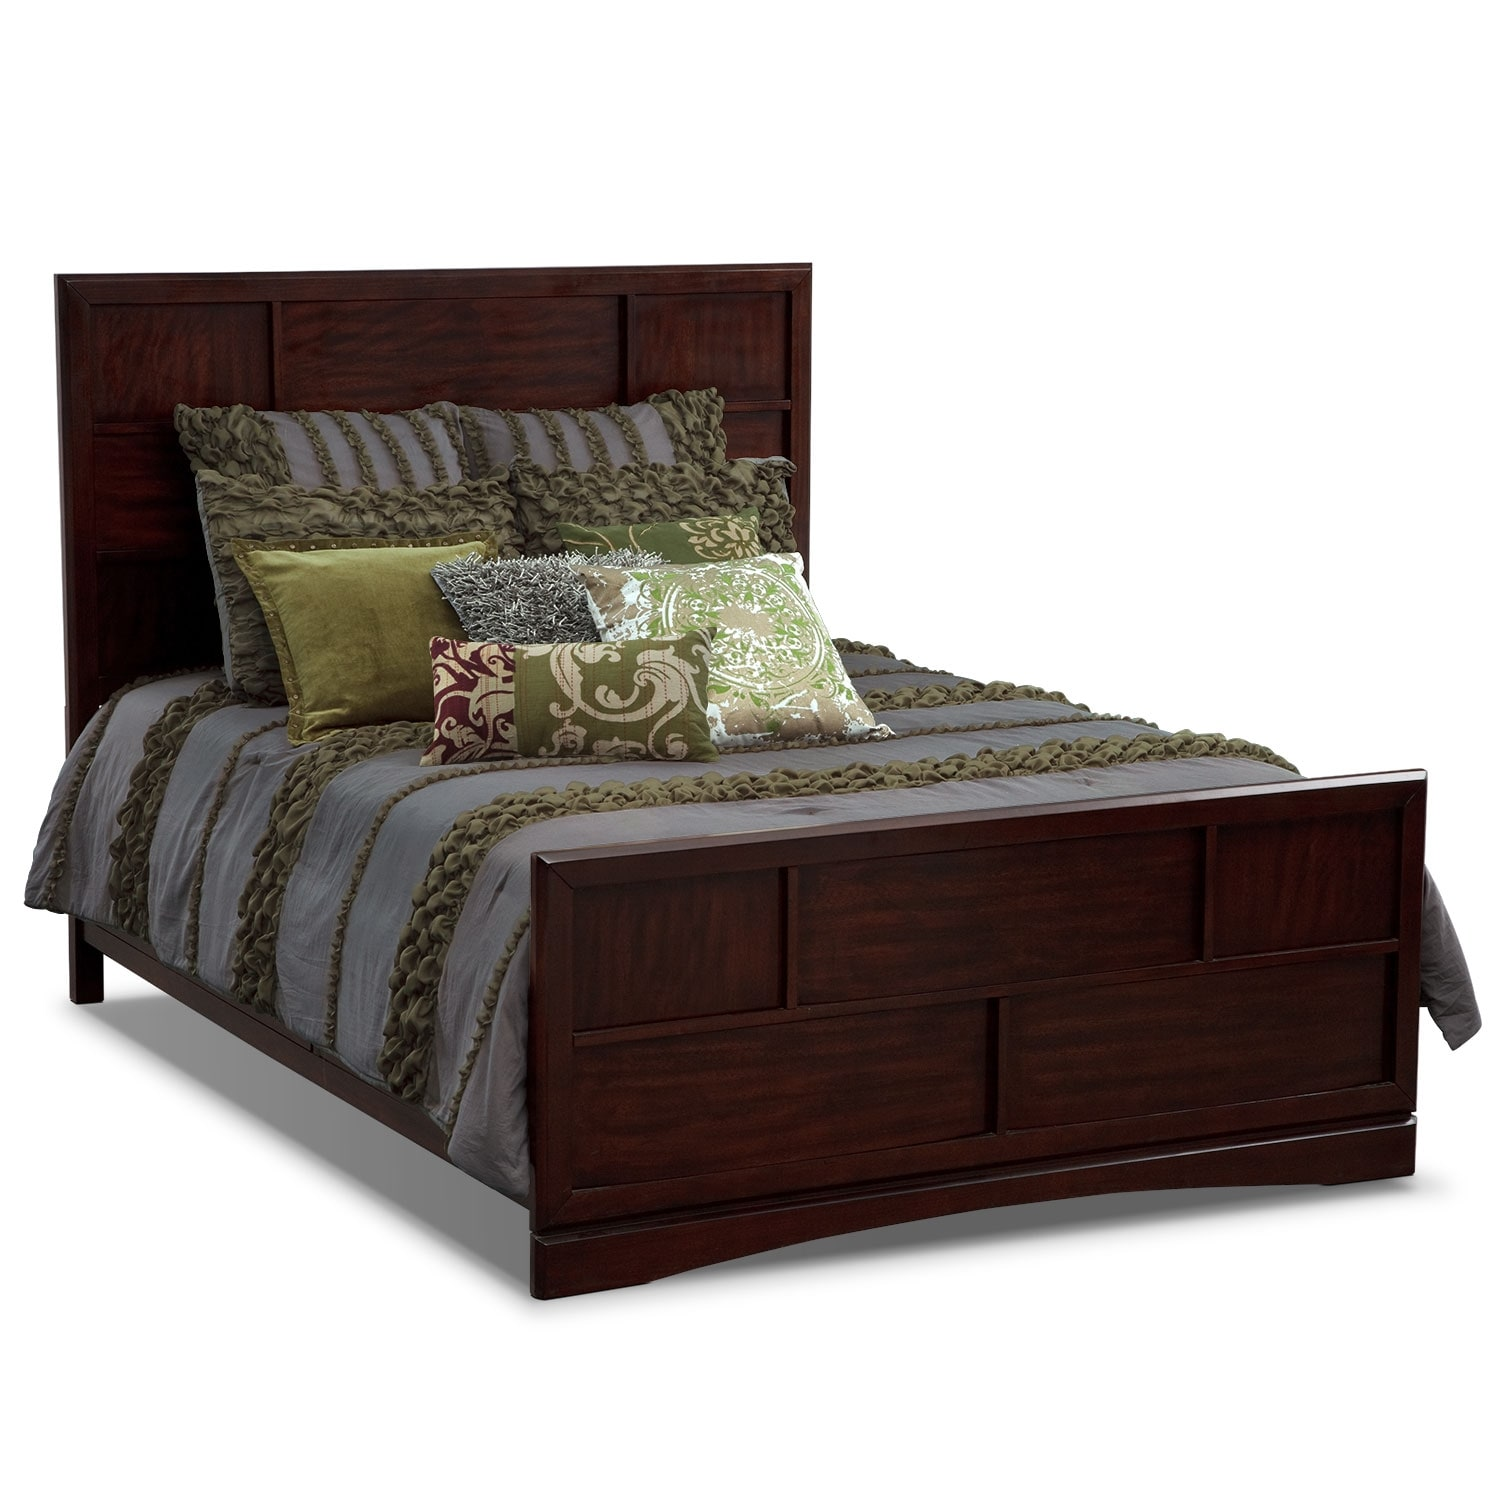 Accent and Occasional Furniture - Caroline III Queen Bedding Set